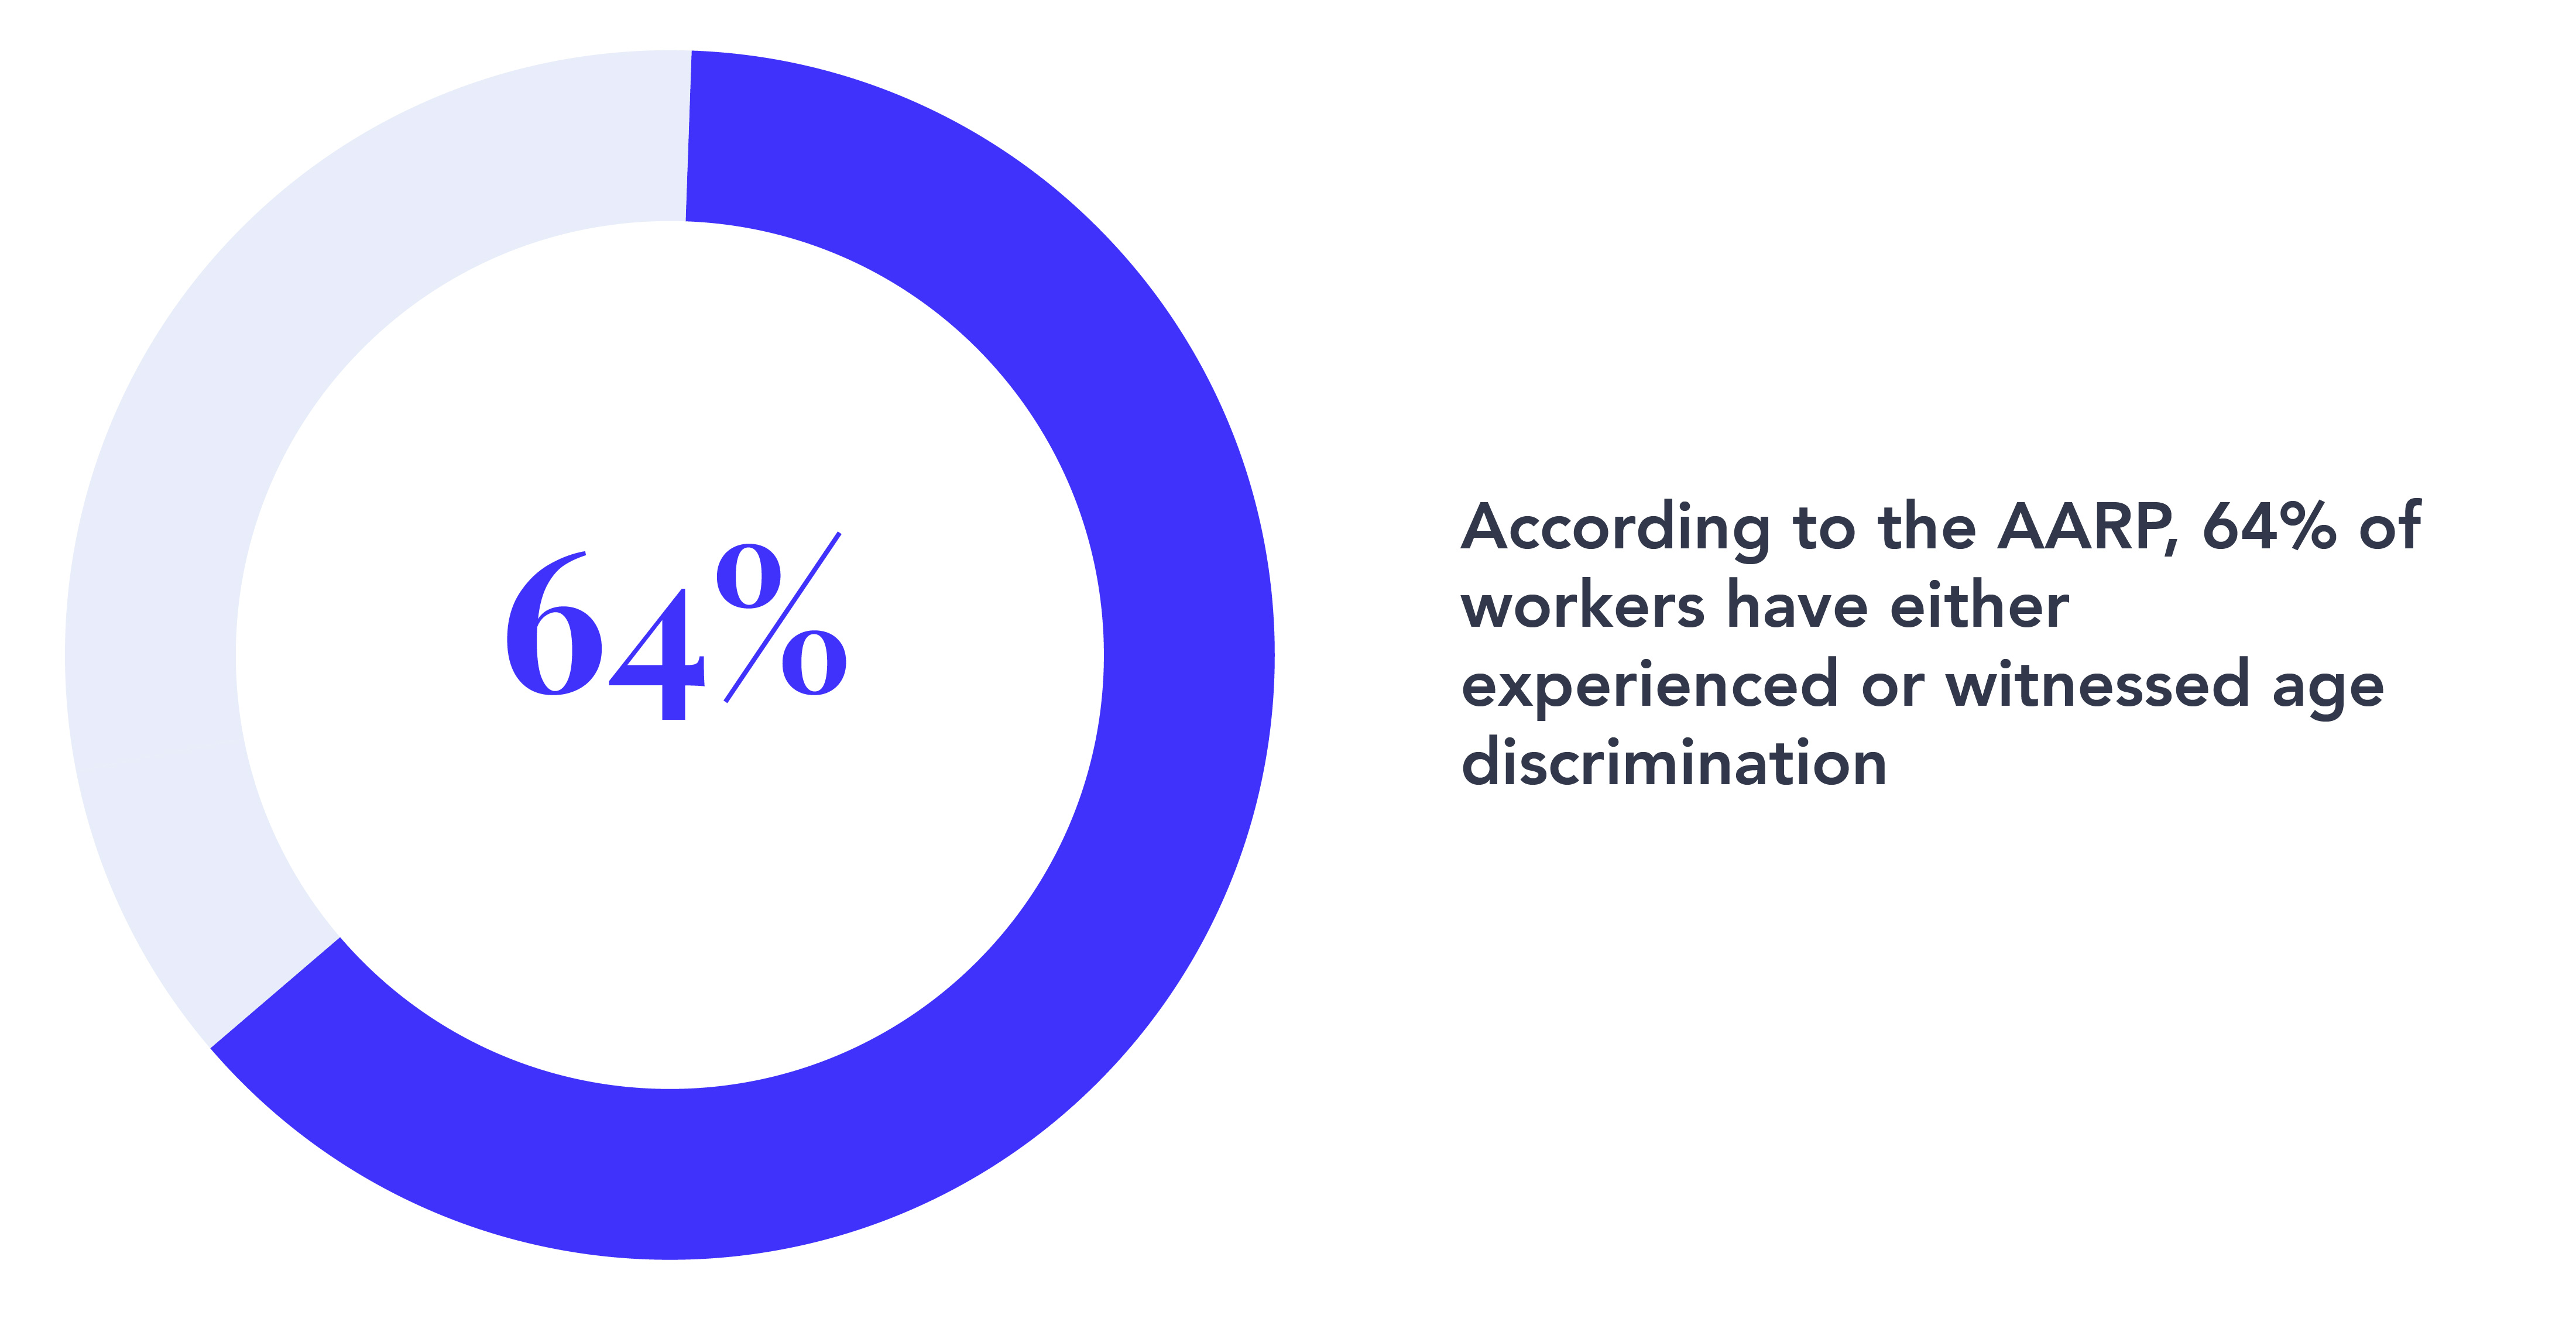 64% of workers have experienced or witnessed age discrimination